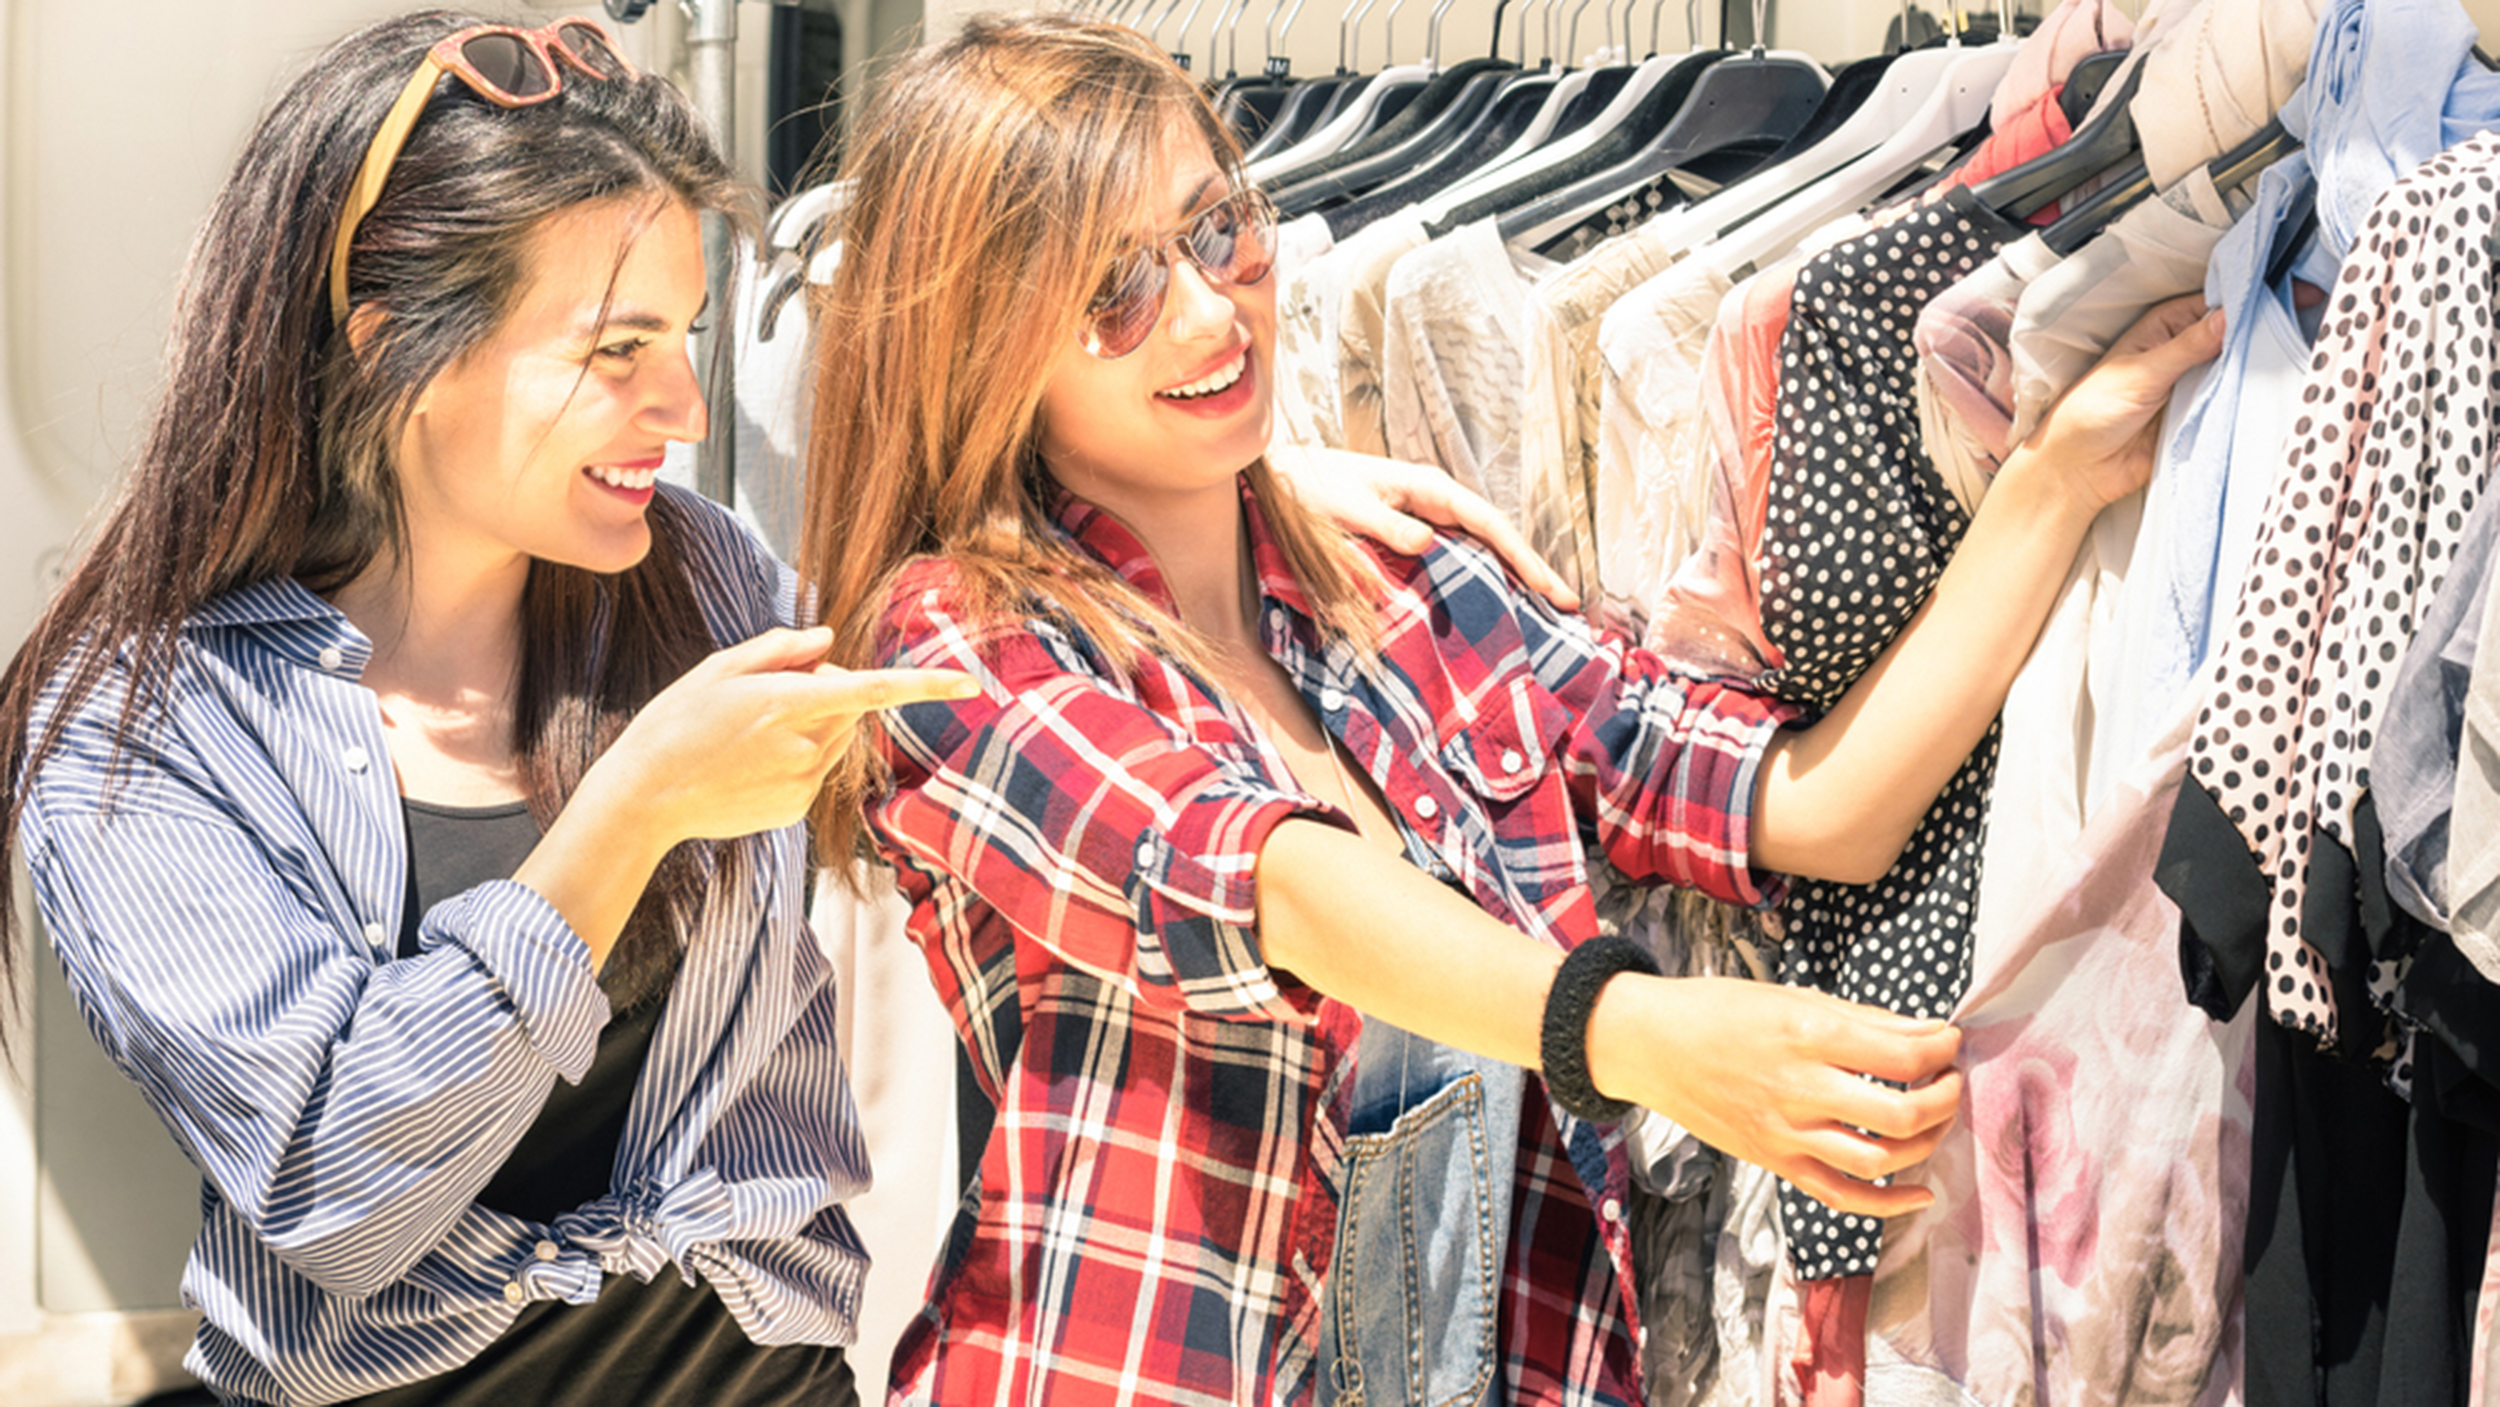 Teens are spending less and shopping thrifty like their parents ...